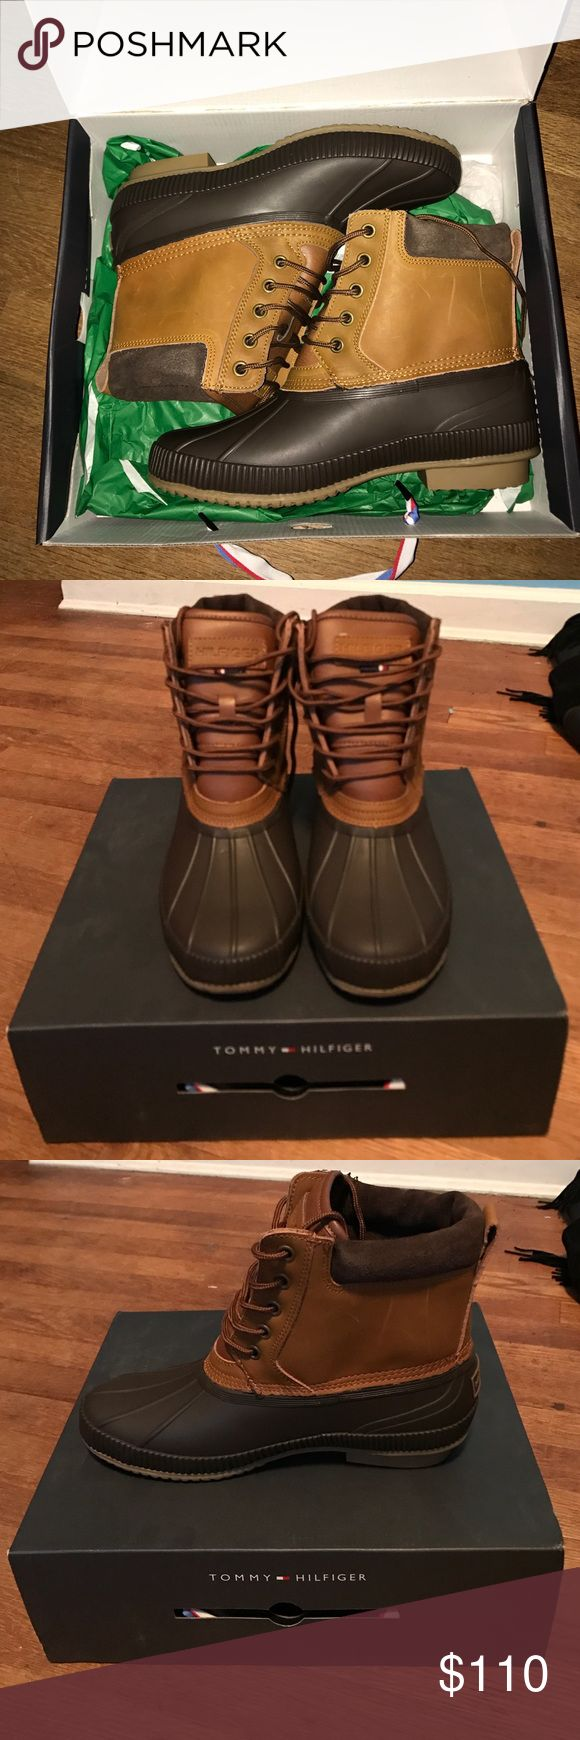 BRAND NEW TOMMY HILFIGER BOOTS! Style: Charlie Brand new, still in box Tommy Hilfiger winter boots. Upper boot: made of leather. Waterproof and insulated! Tommy Hilfiger Shoes Rain & Snow Boots